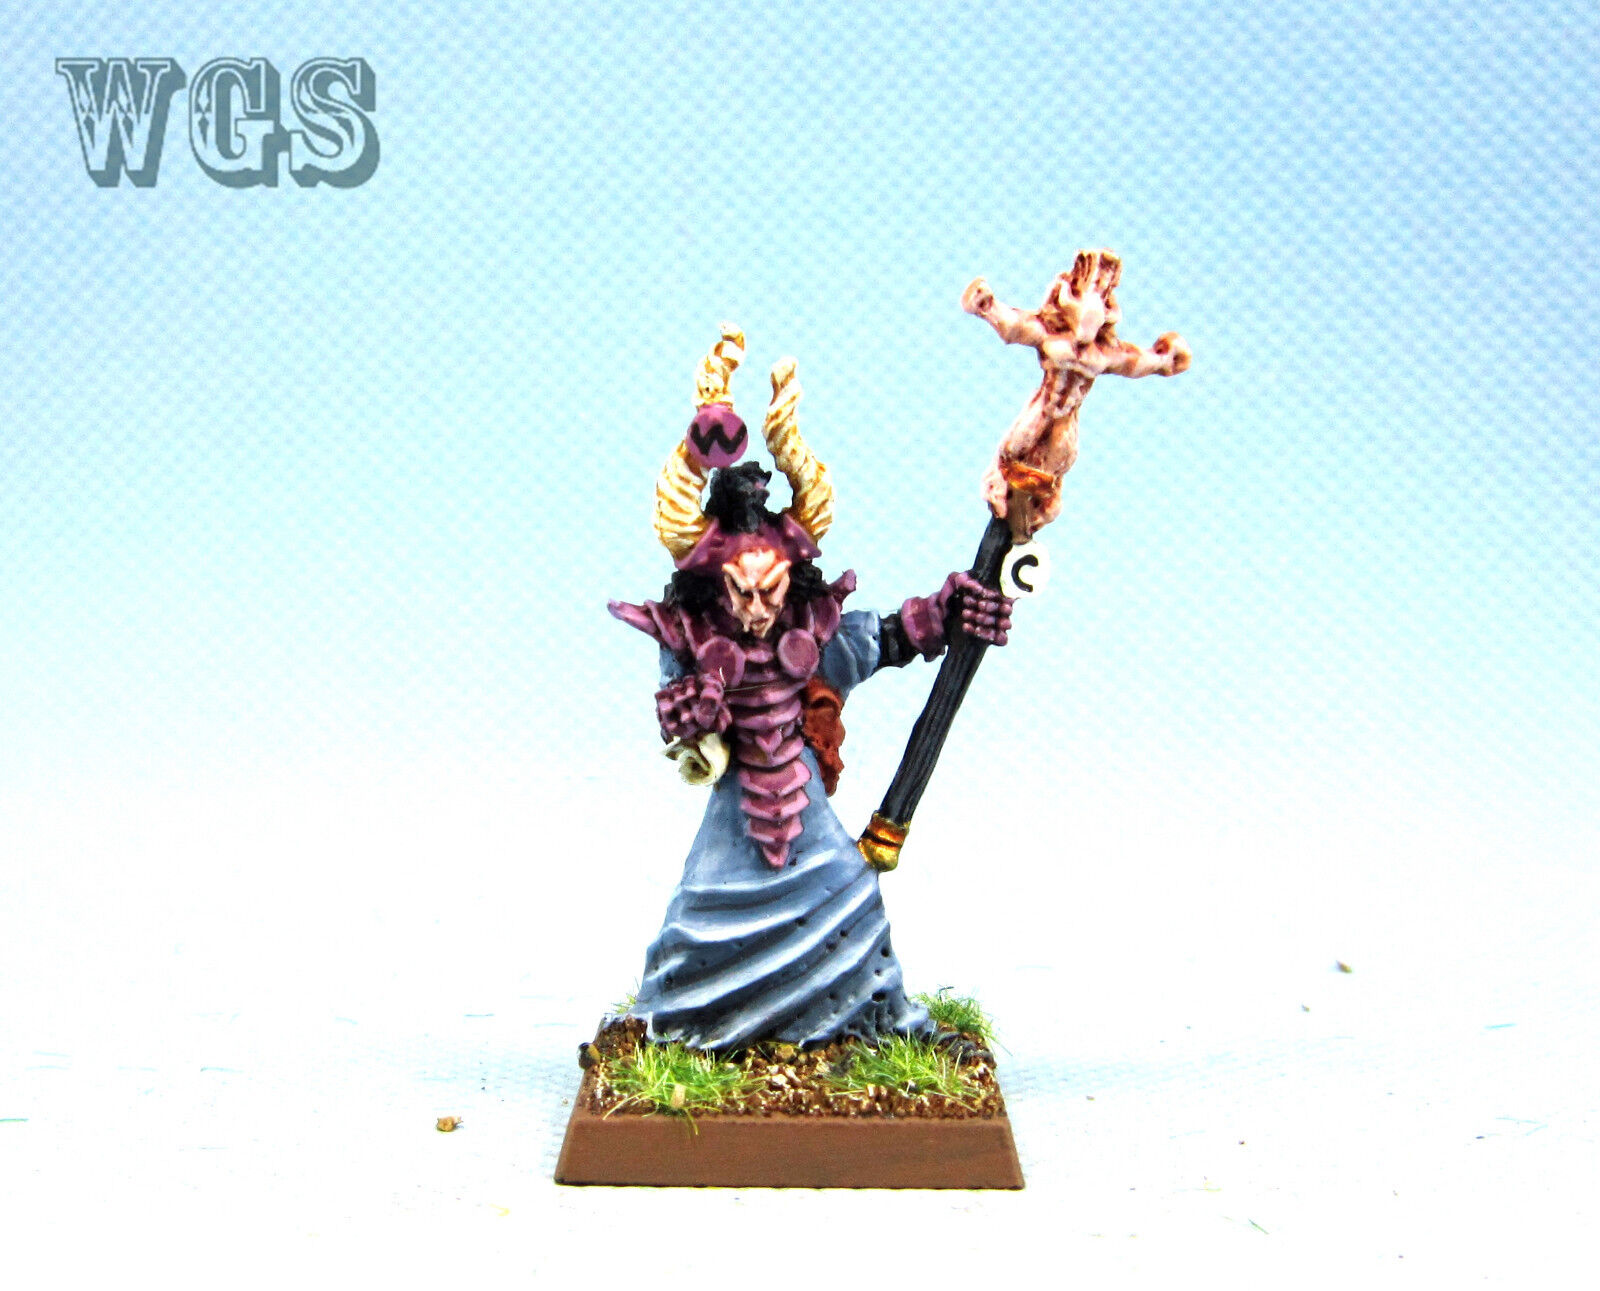 25mm Warhammer fantasyc WGS Painted  Warriors of Chaos Chaos Sorceror WC035  miglior prezzo